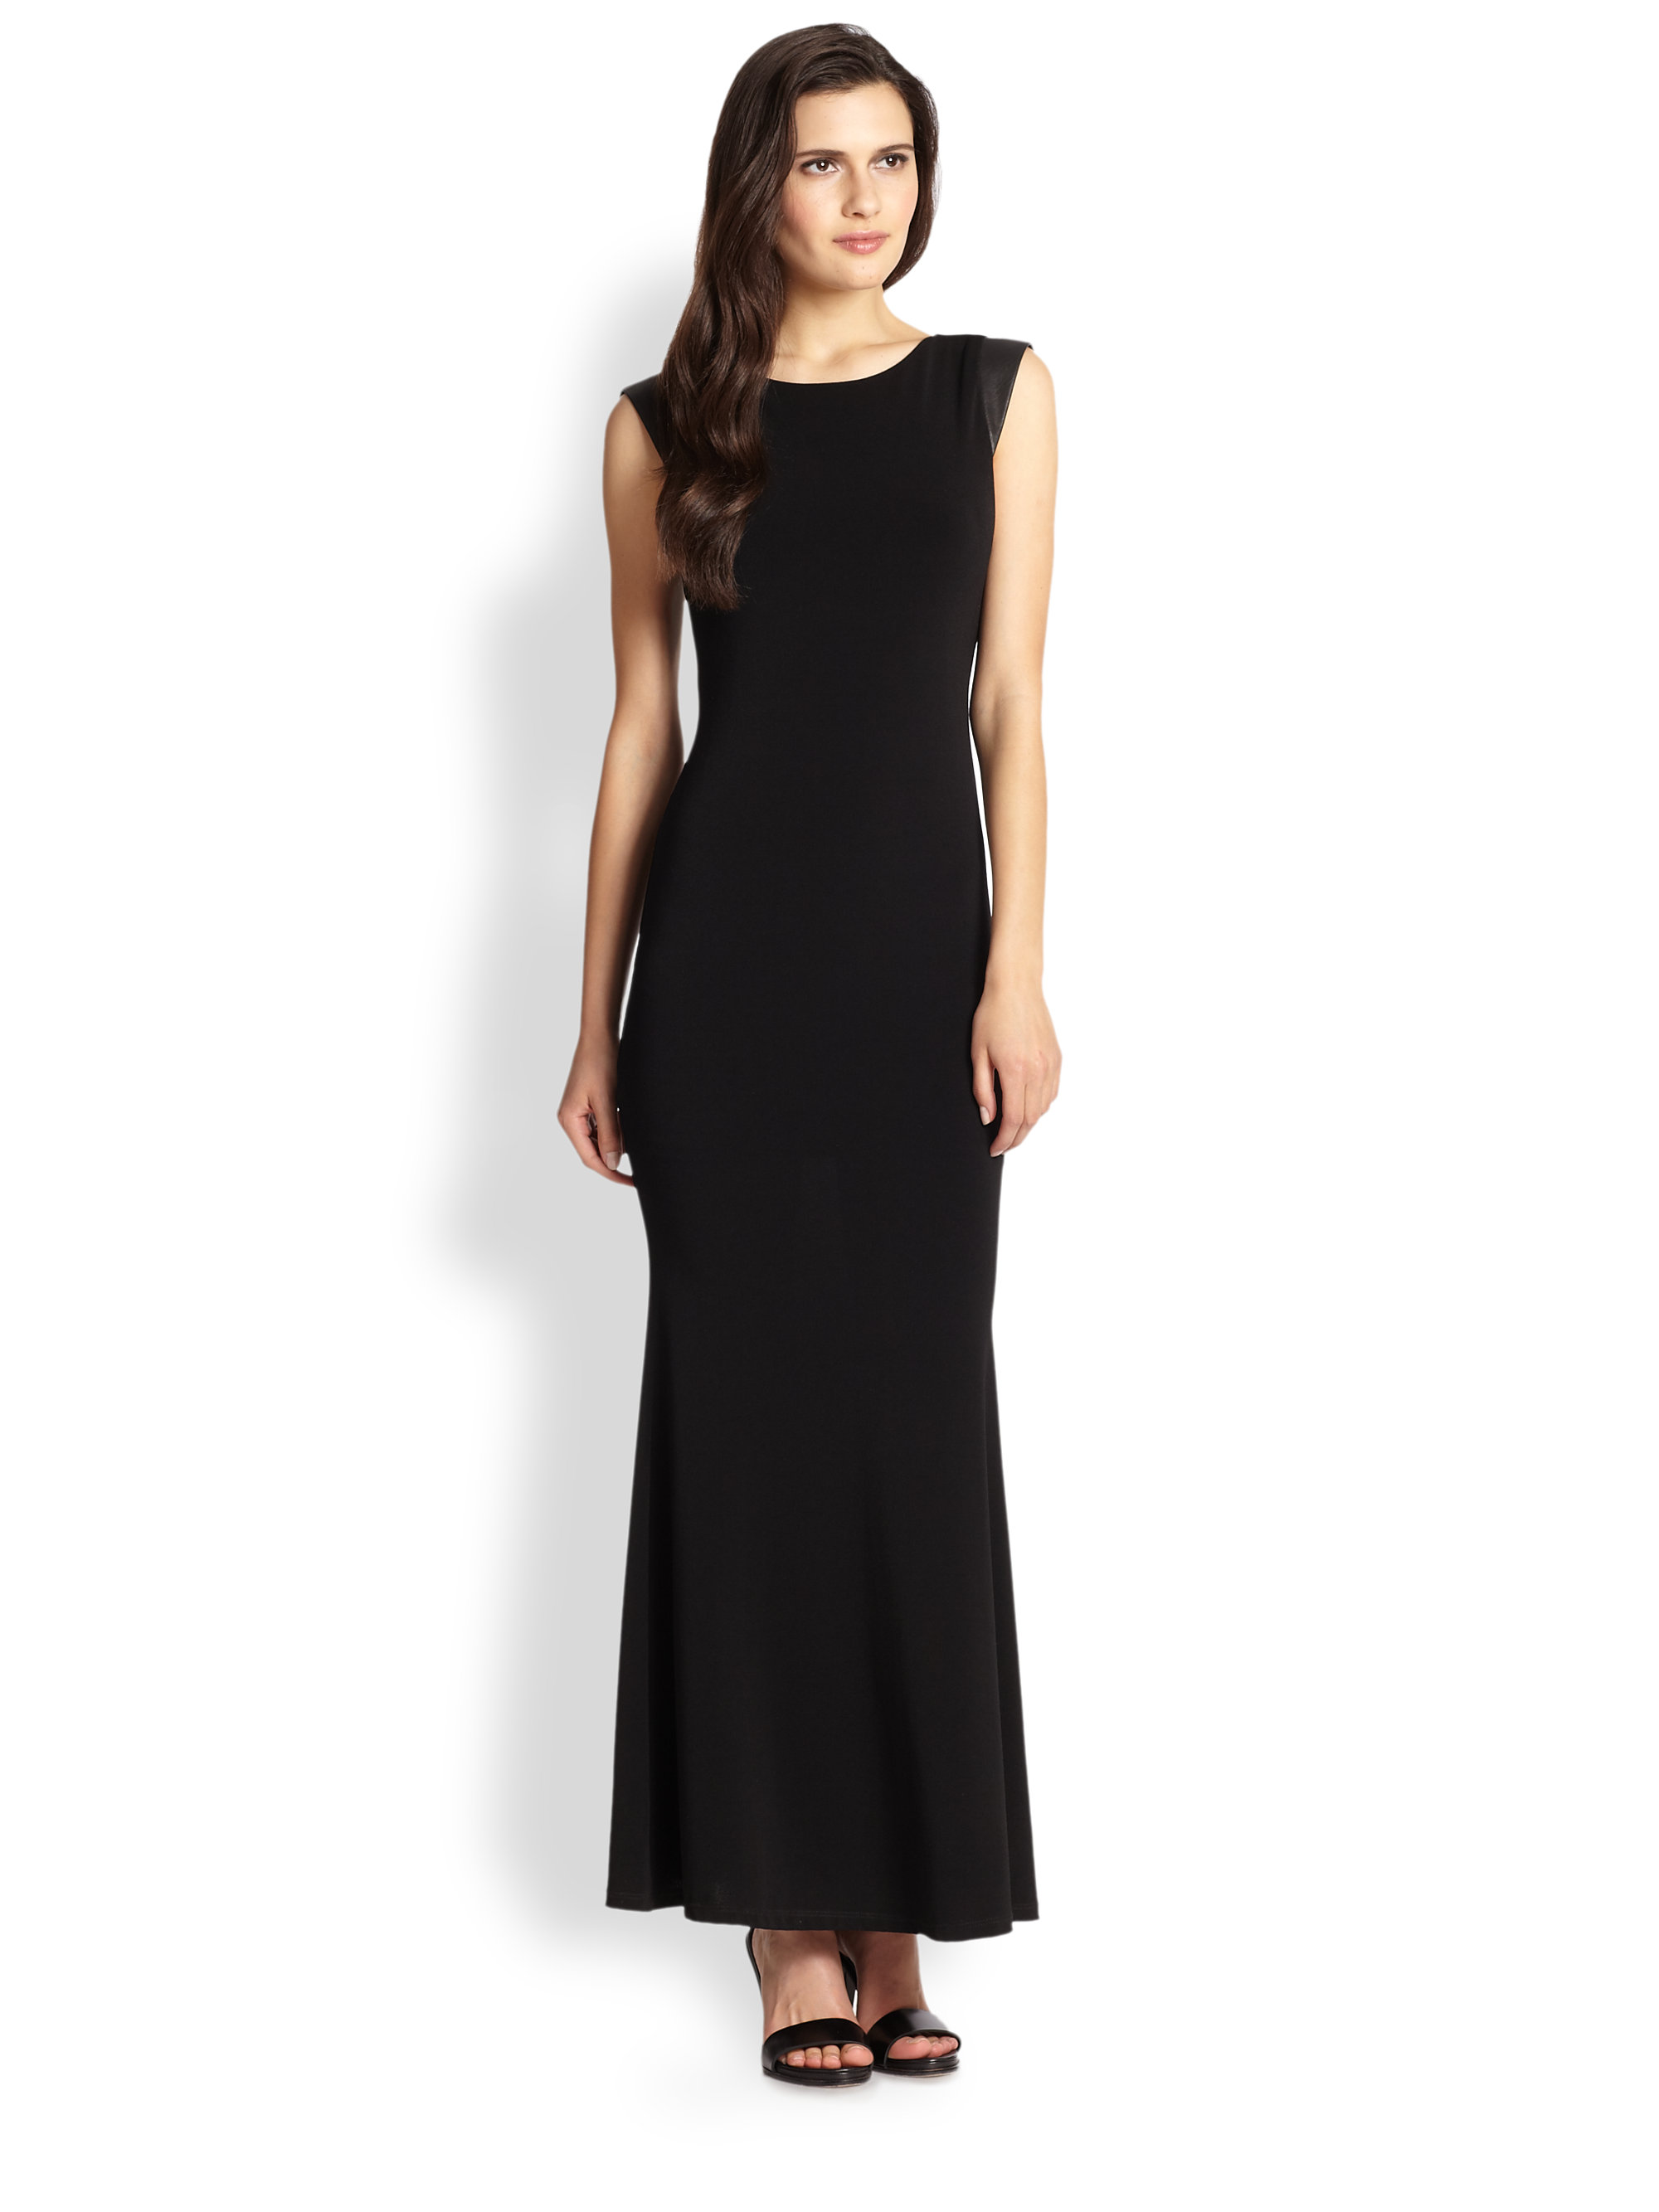 Alice + olivia Leather Open Back Maxi Dress in Black   Lyst